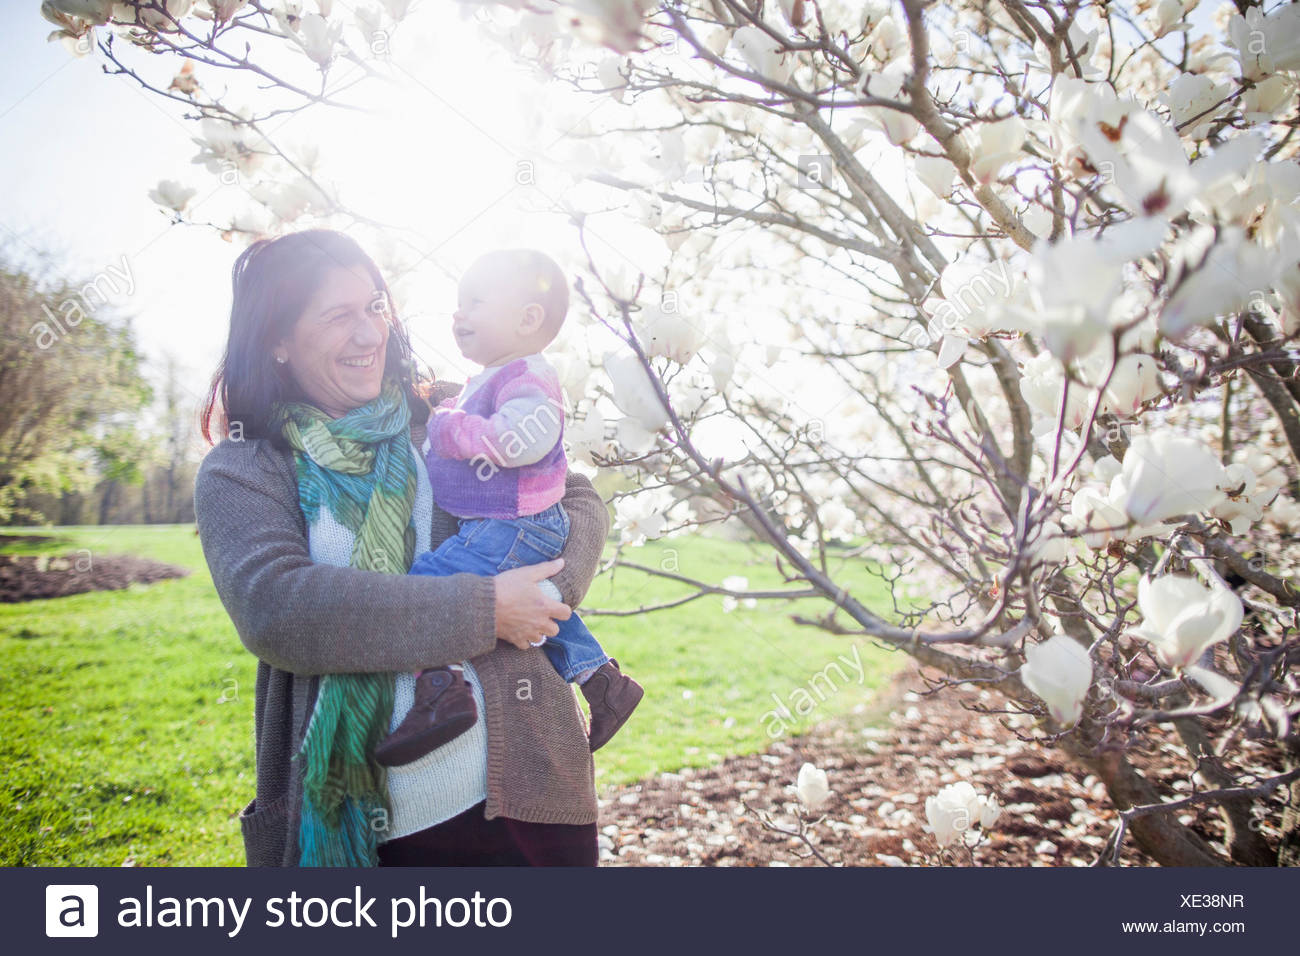 Portrait of baby girl and grandmother next to magnolia blossom - Stock Image